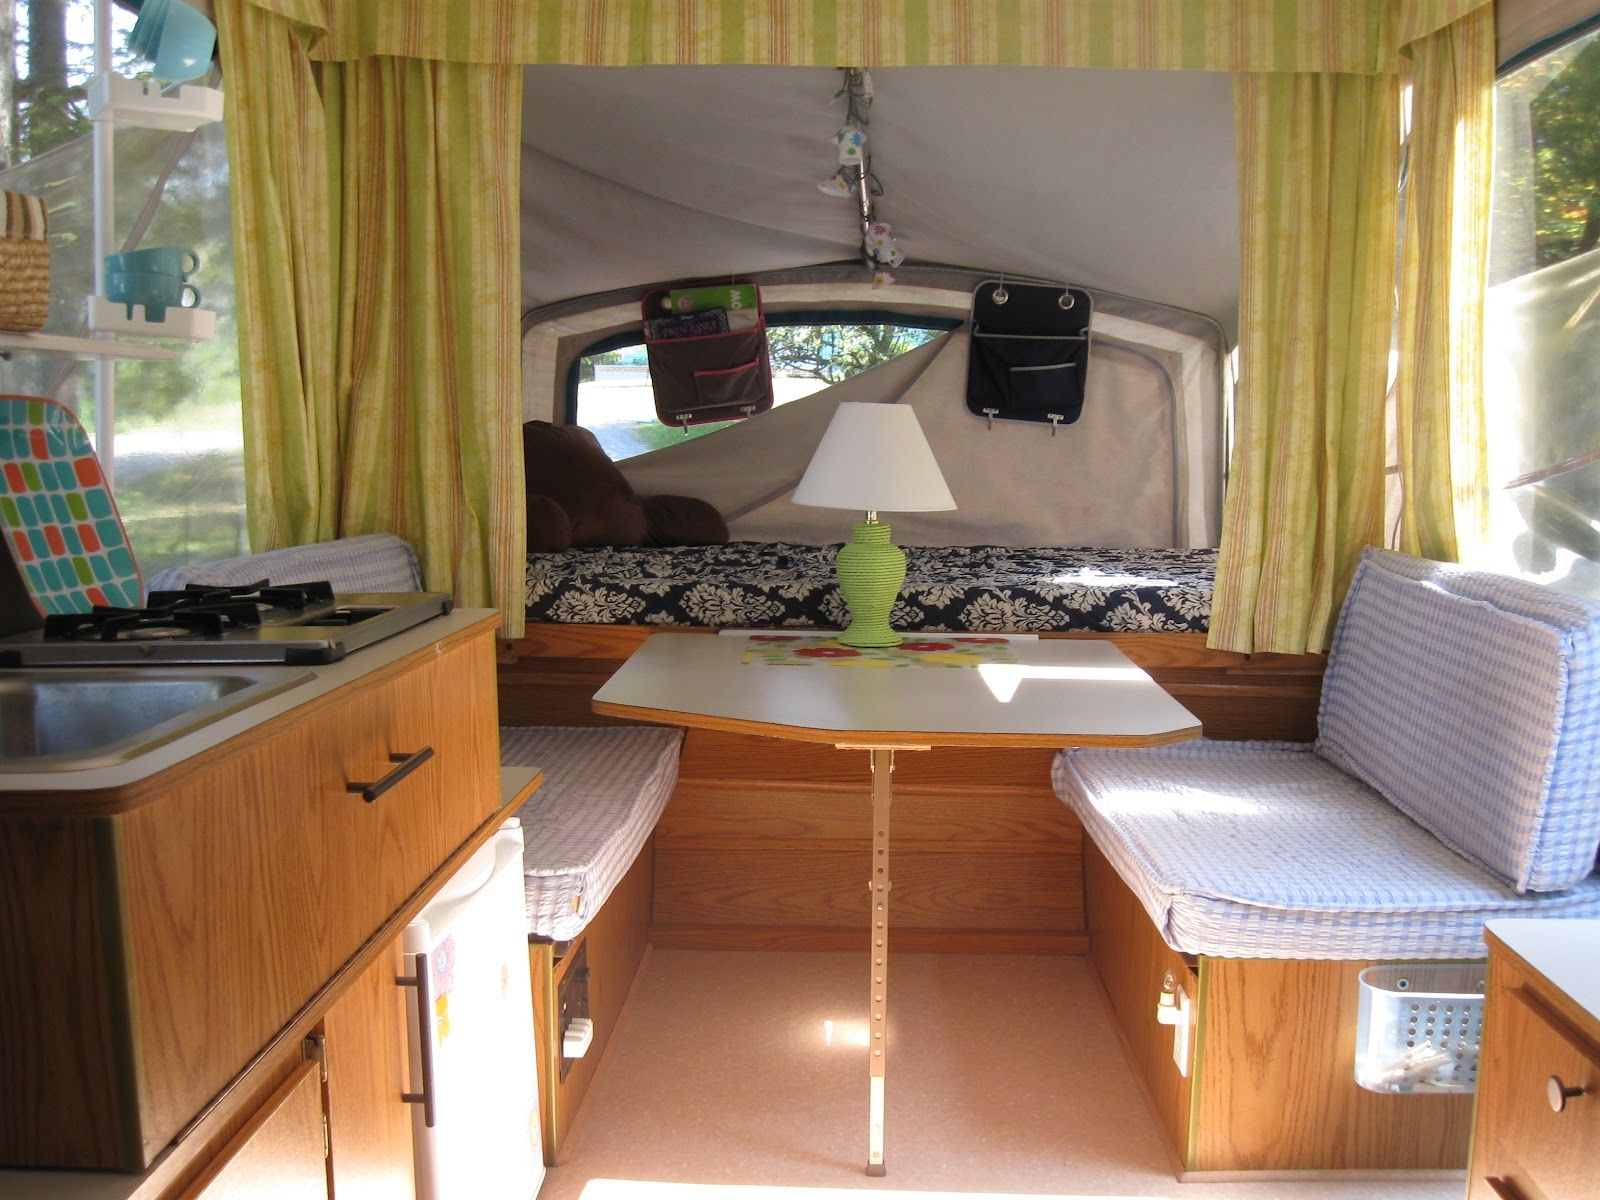 Wonderful photo of camper decorating ideascamper ideas this house we call home remodel pop up interior also travel and rh pinterest